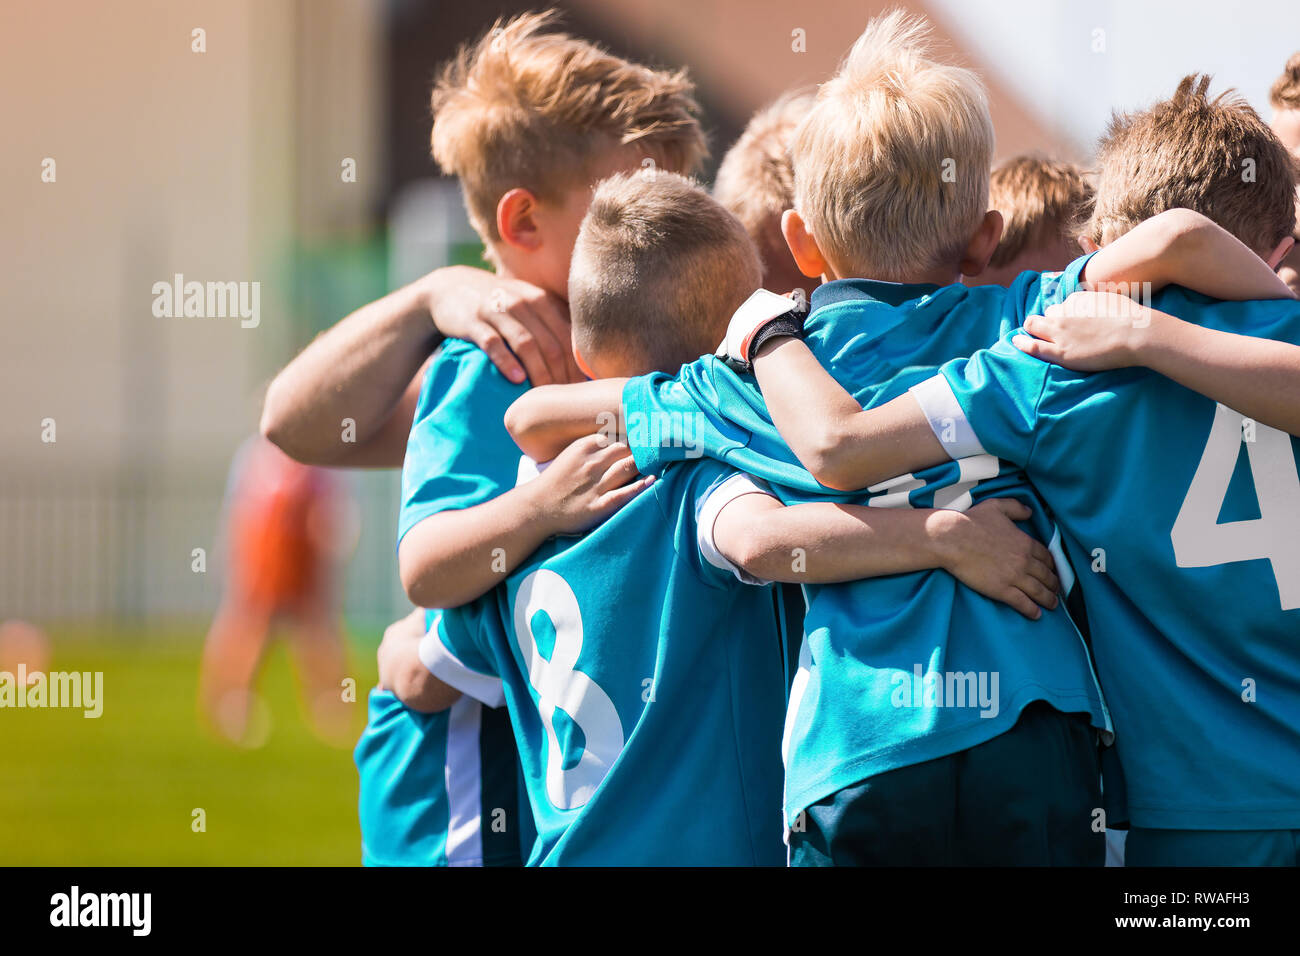 Children Team Sport. Kids Play Sports Game. Children Sporty Team United Ready to Play Game. Youth Sports For Children. Boys in Sports Jersey Red Shirt - Stock Image